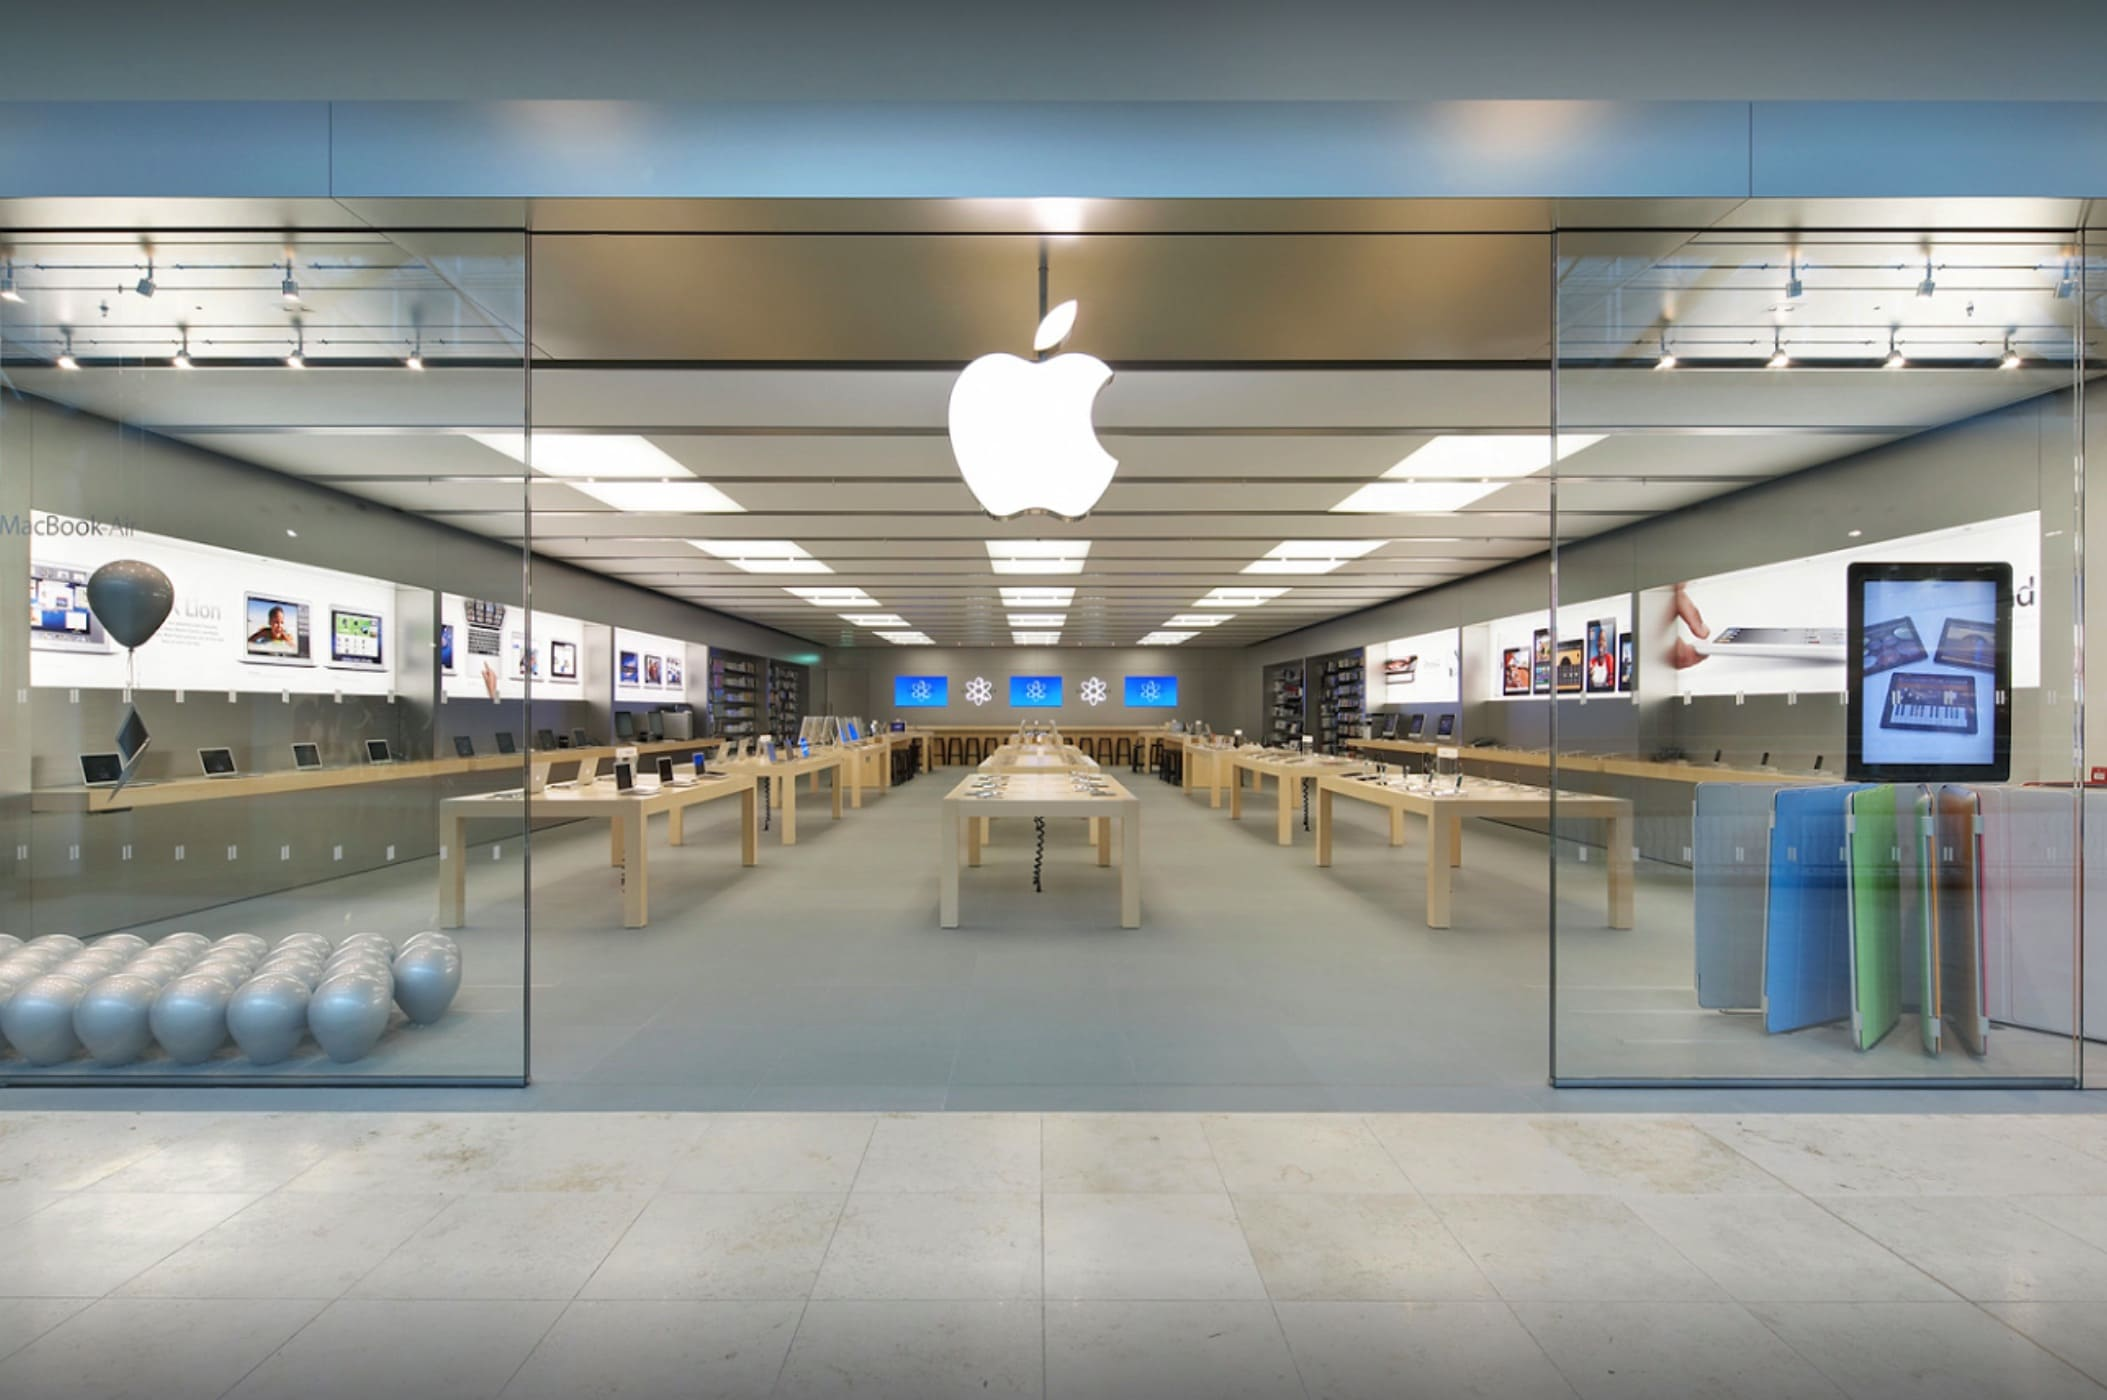 U.K. cops used a helicopter to help chase down Apple Store thieves